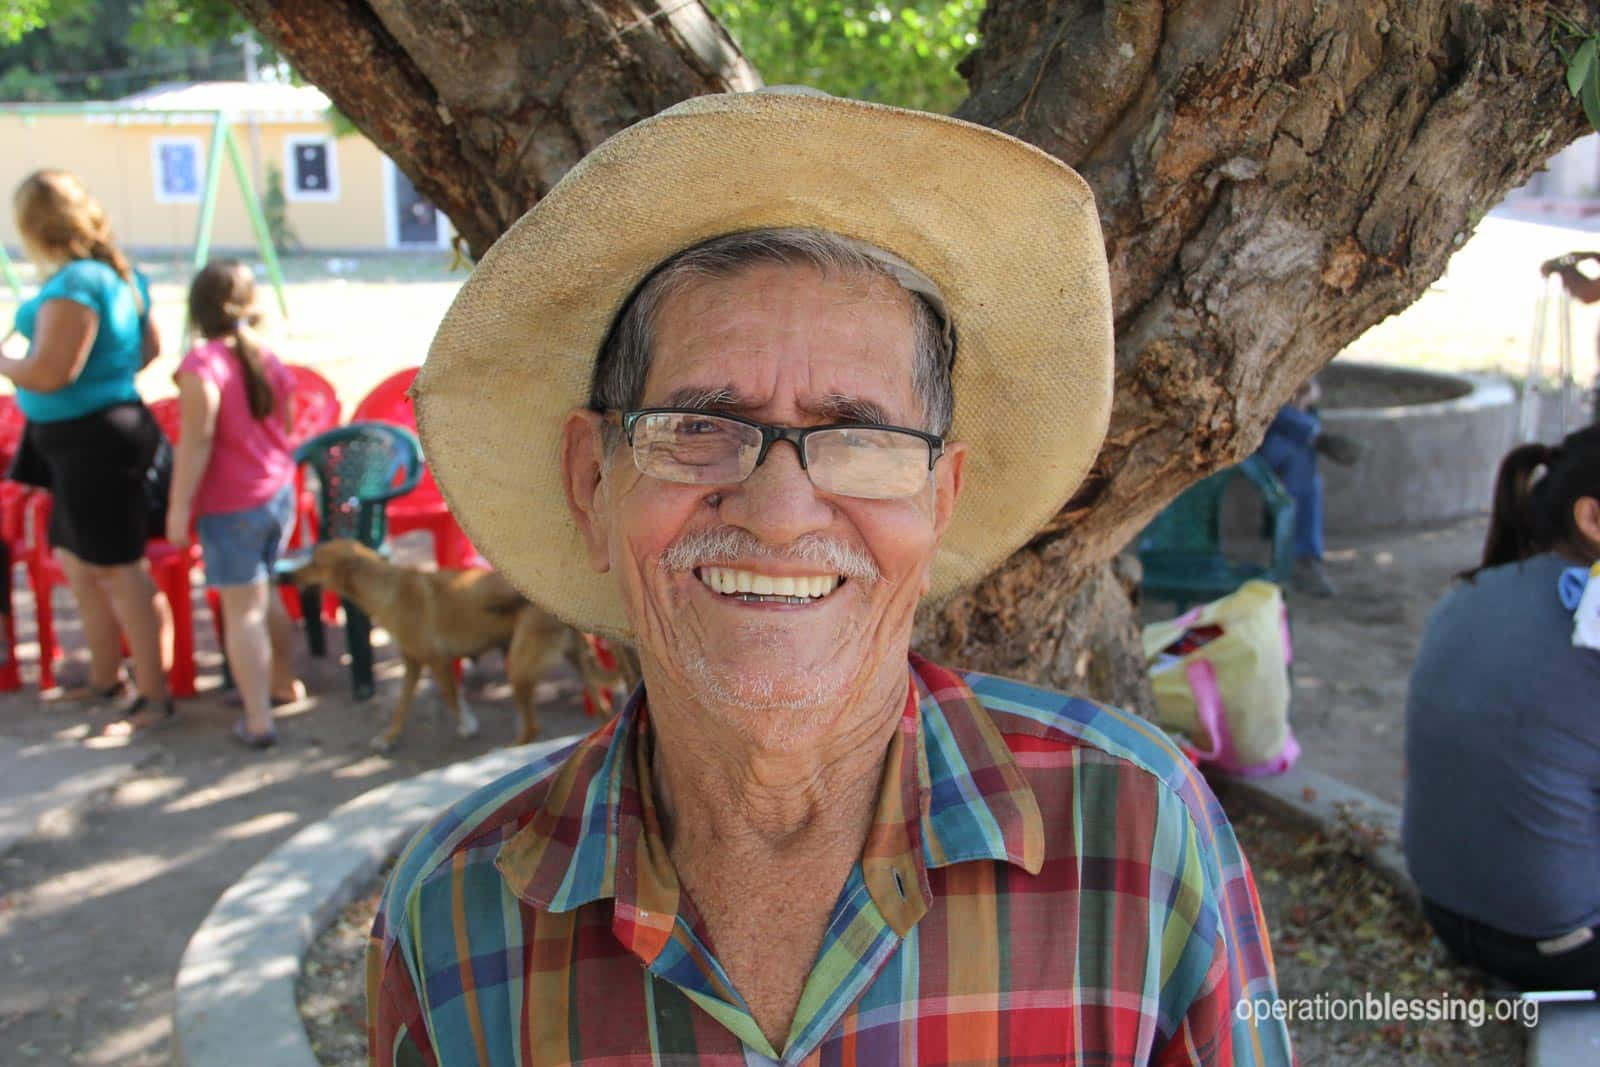 Francisco from El Salvador smiles after receiving the medicine he needs for high blood pressure.